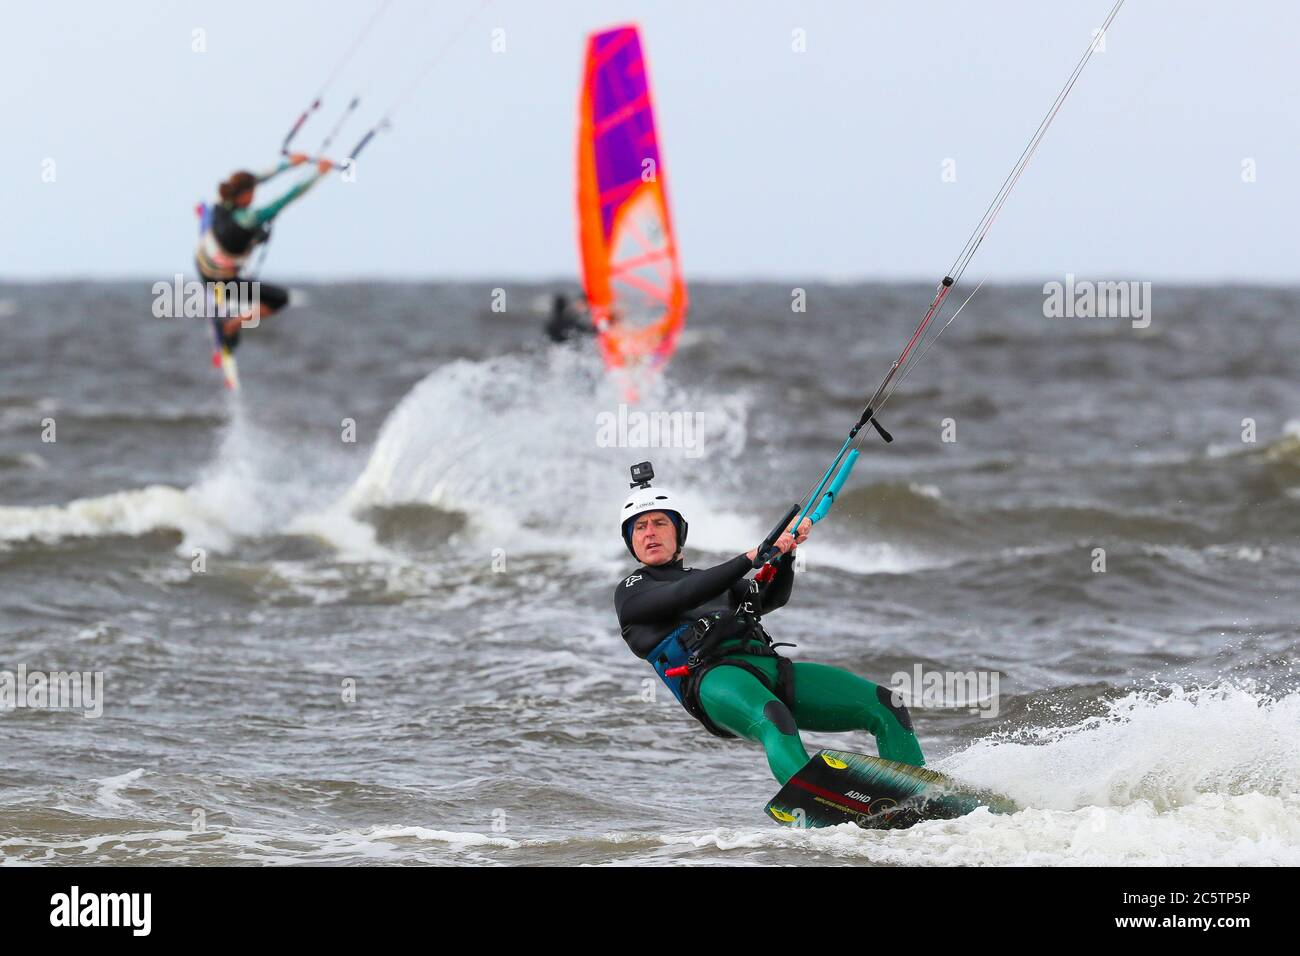 Troon, UK. 05th July, 2020. Gusty winds up to 50 mph attracted windsurfers to the beach at Troon to enjoy their hobby. on the Firth of Clyde. Credit: Findlay/Alamy Live News Stock Photo